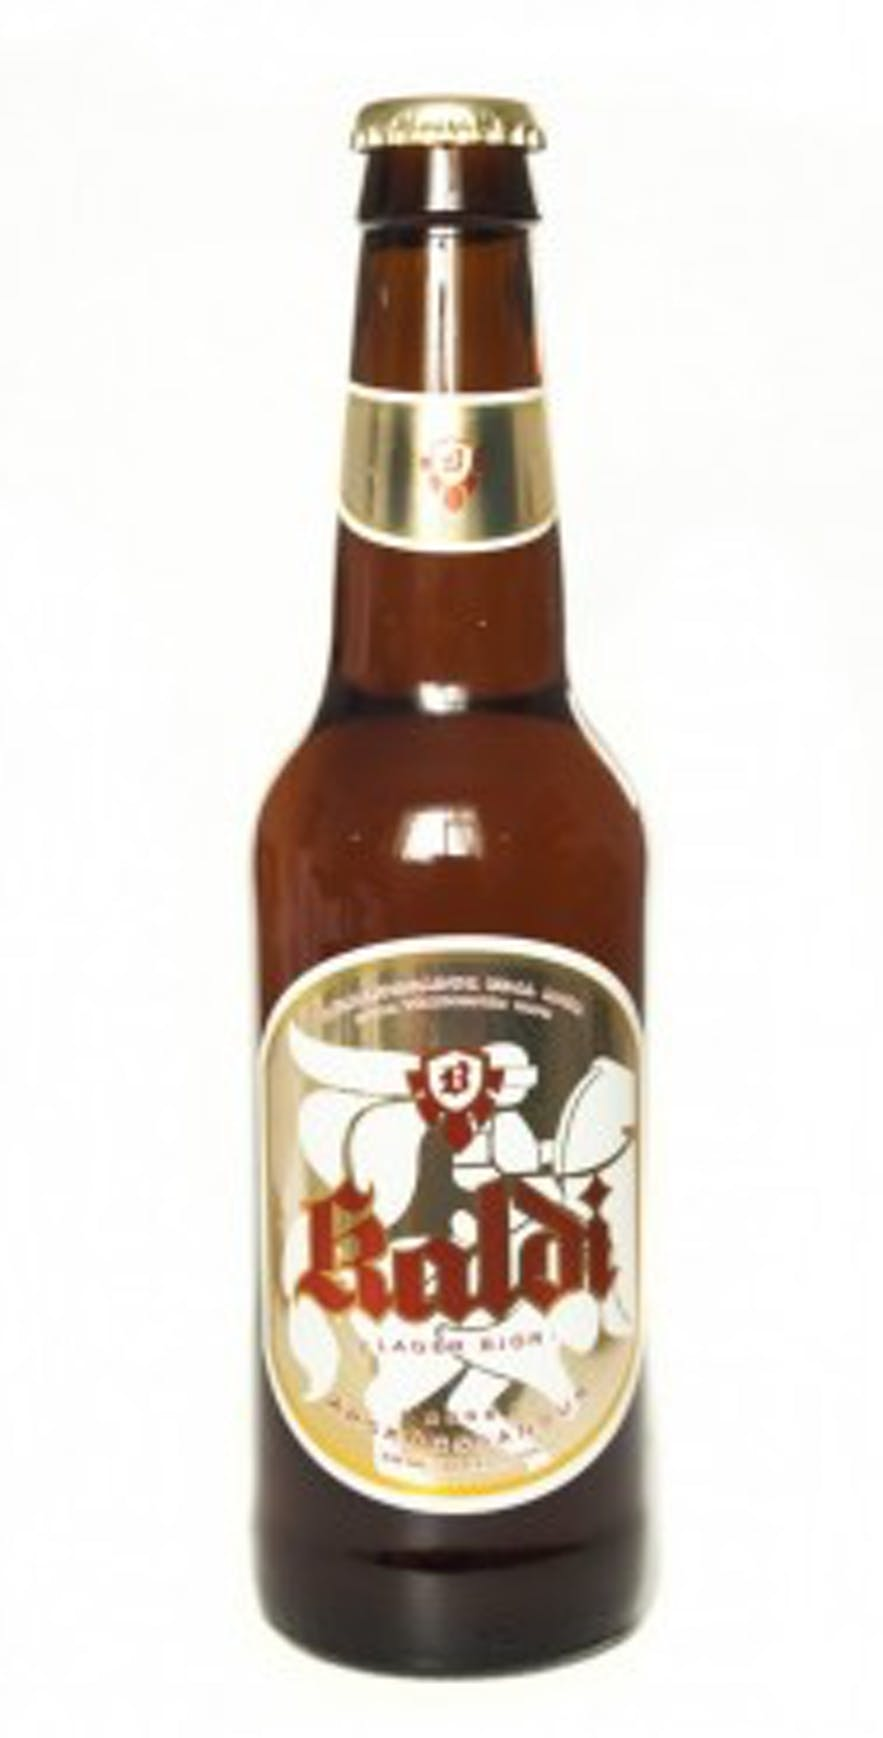 Blonde is just one of many Kaldi beers.